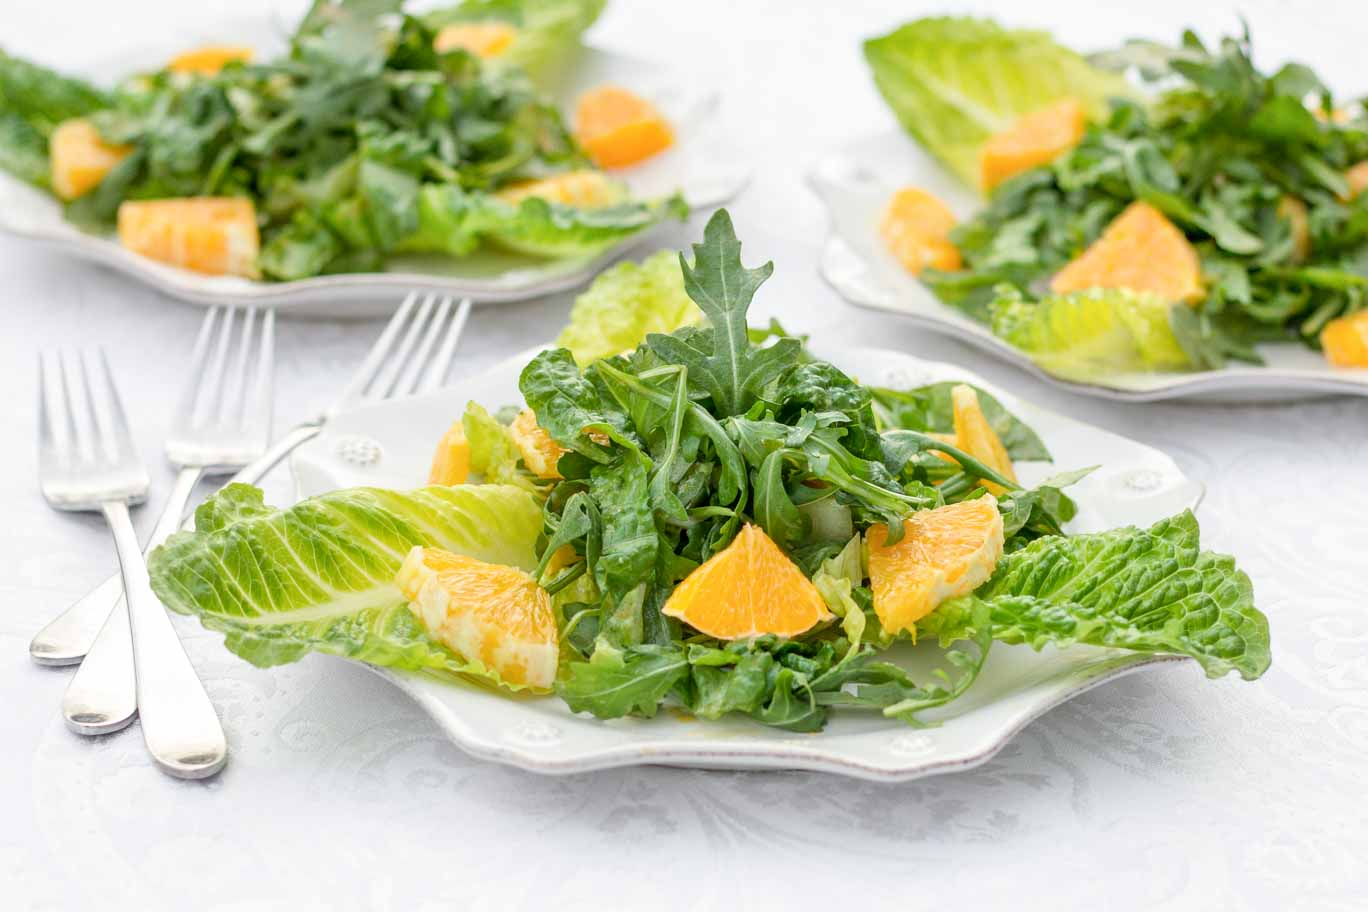 Product Photography: 3 plates of Orang & Arugula Salad from The Noil Kitchen